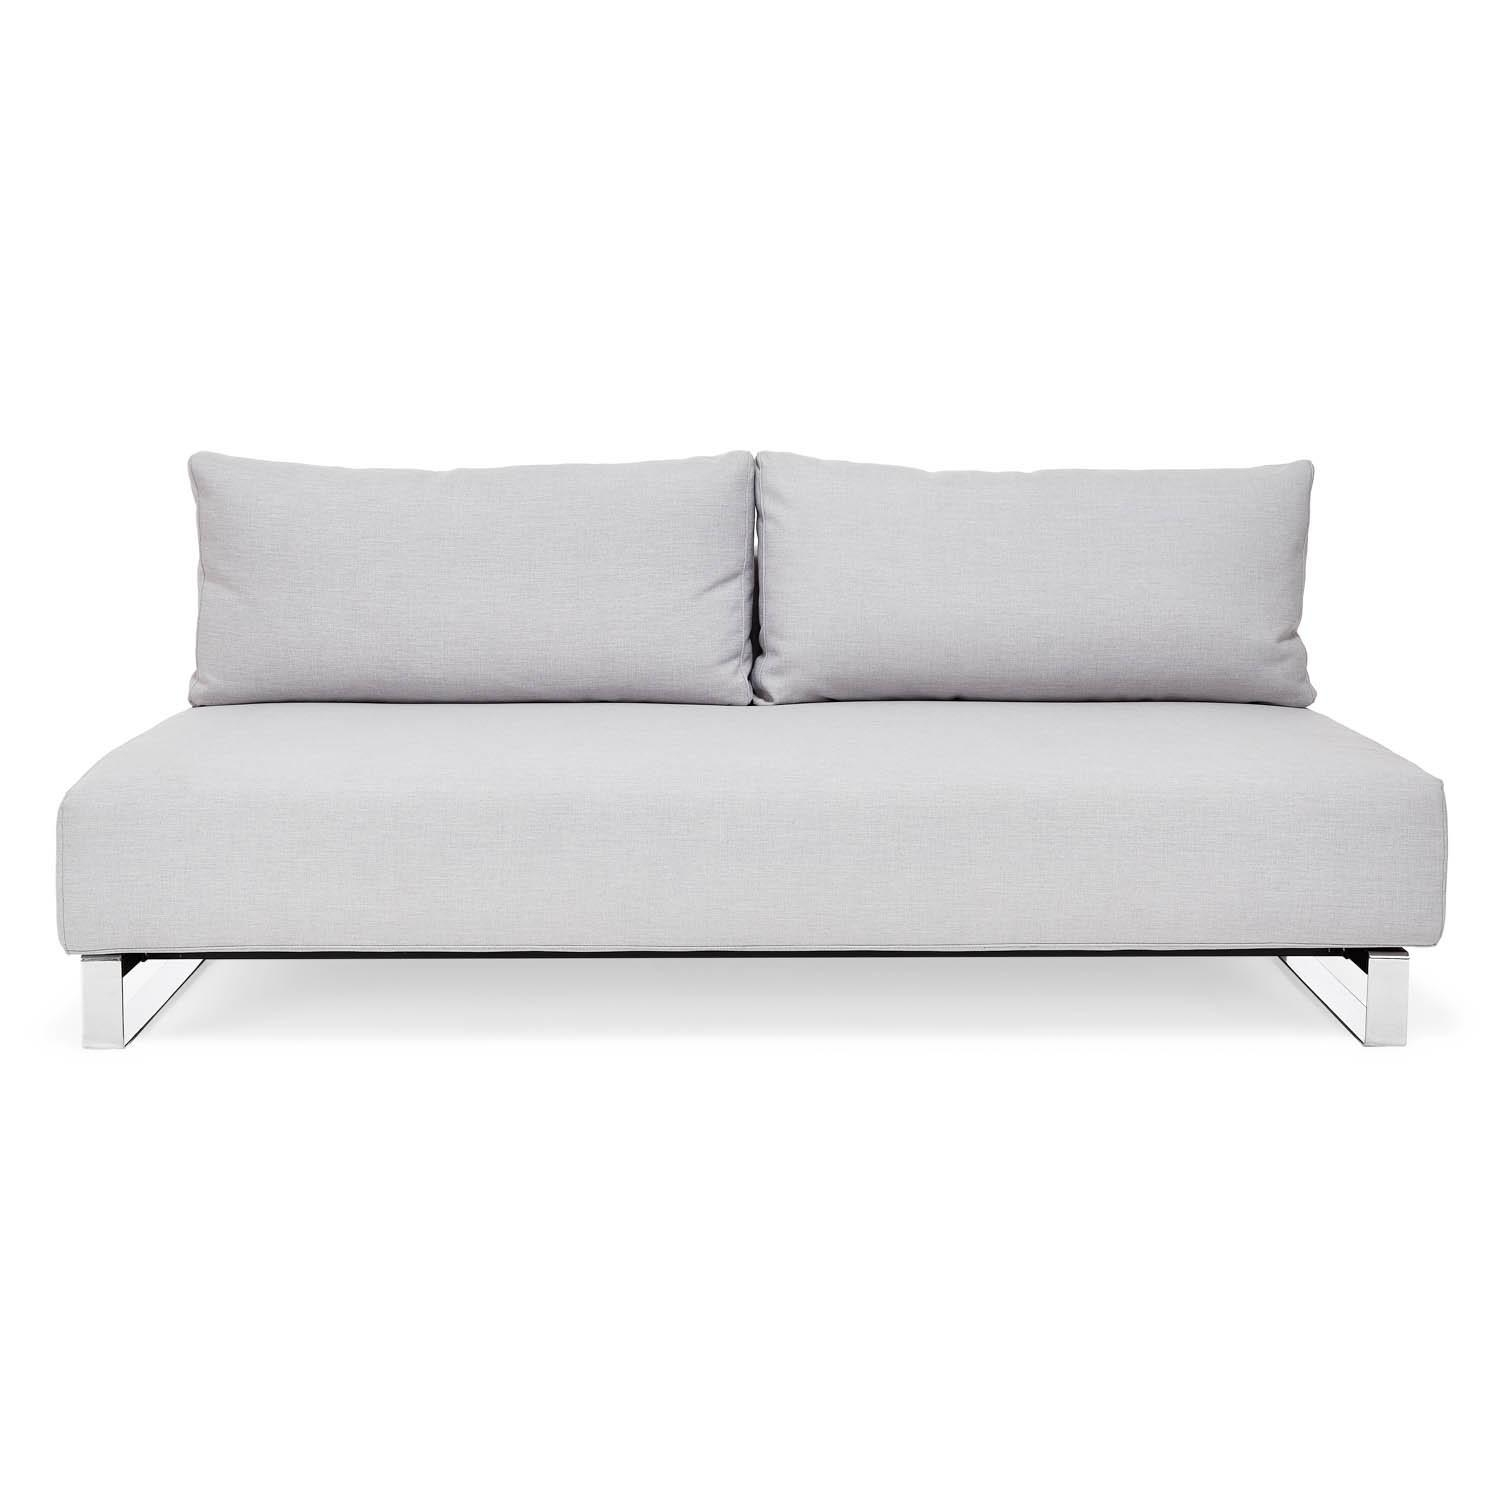 Futons, Daybeds & Sleeper Sofas Are Available At Abc Home Pertaining To Sofa Day Beds (Image 14 of 20)